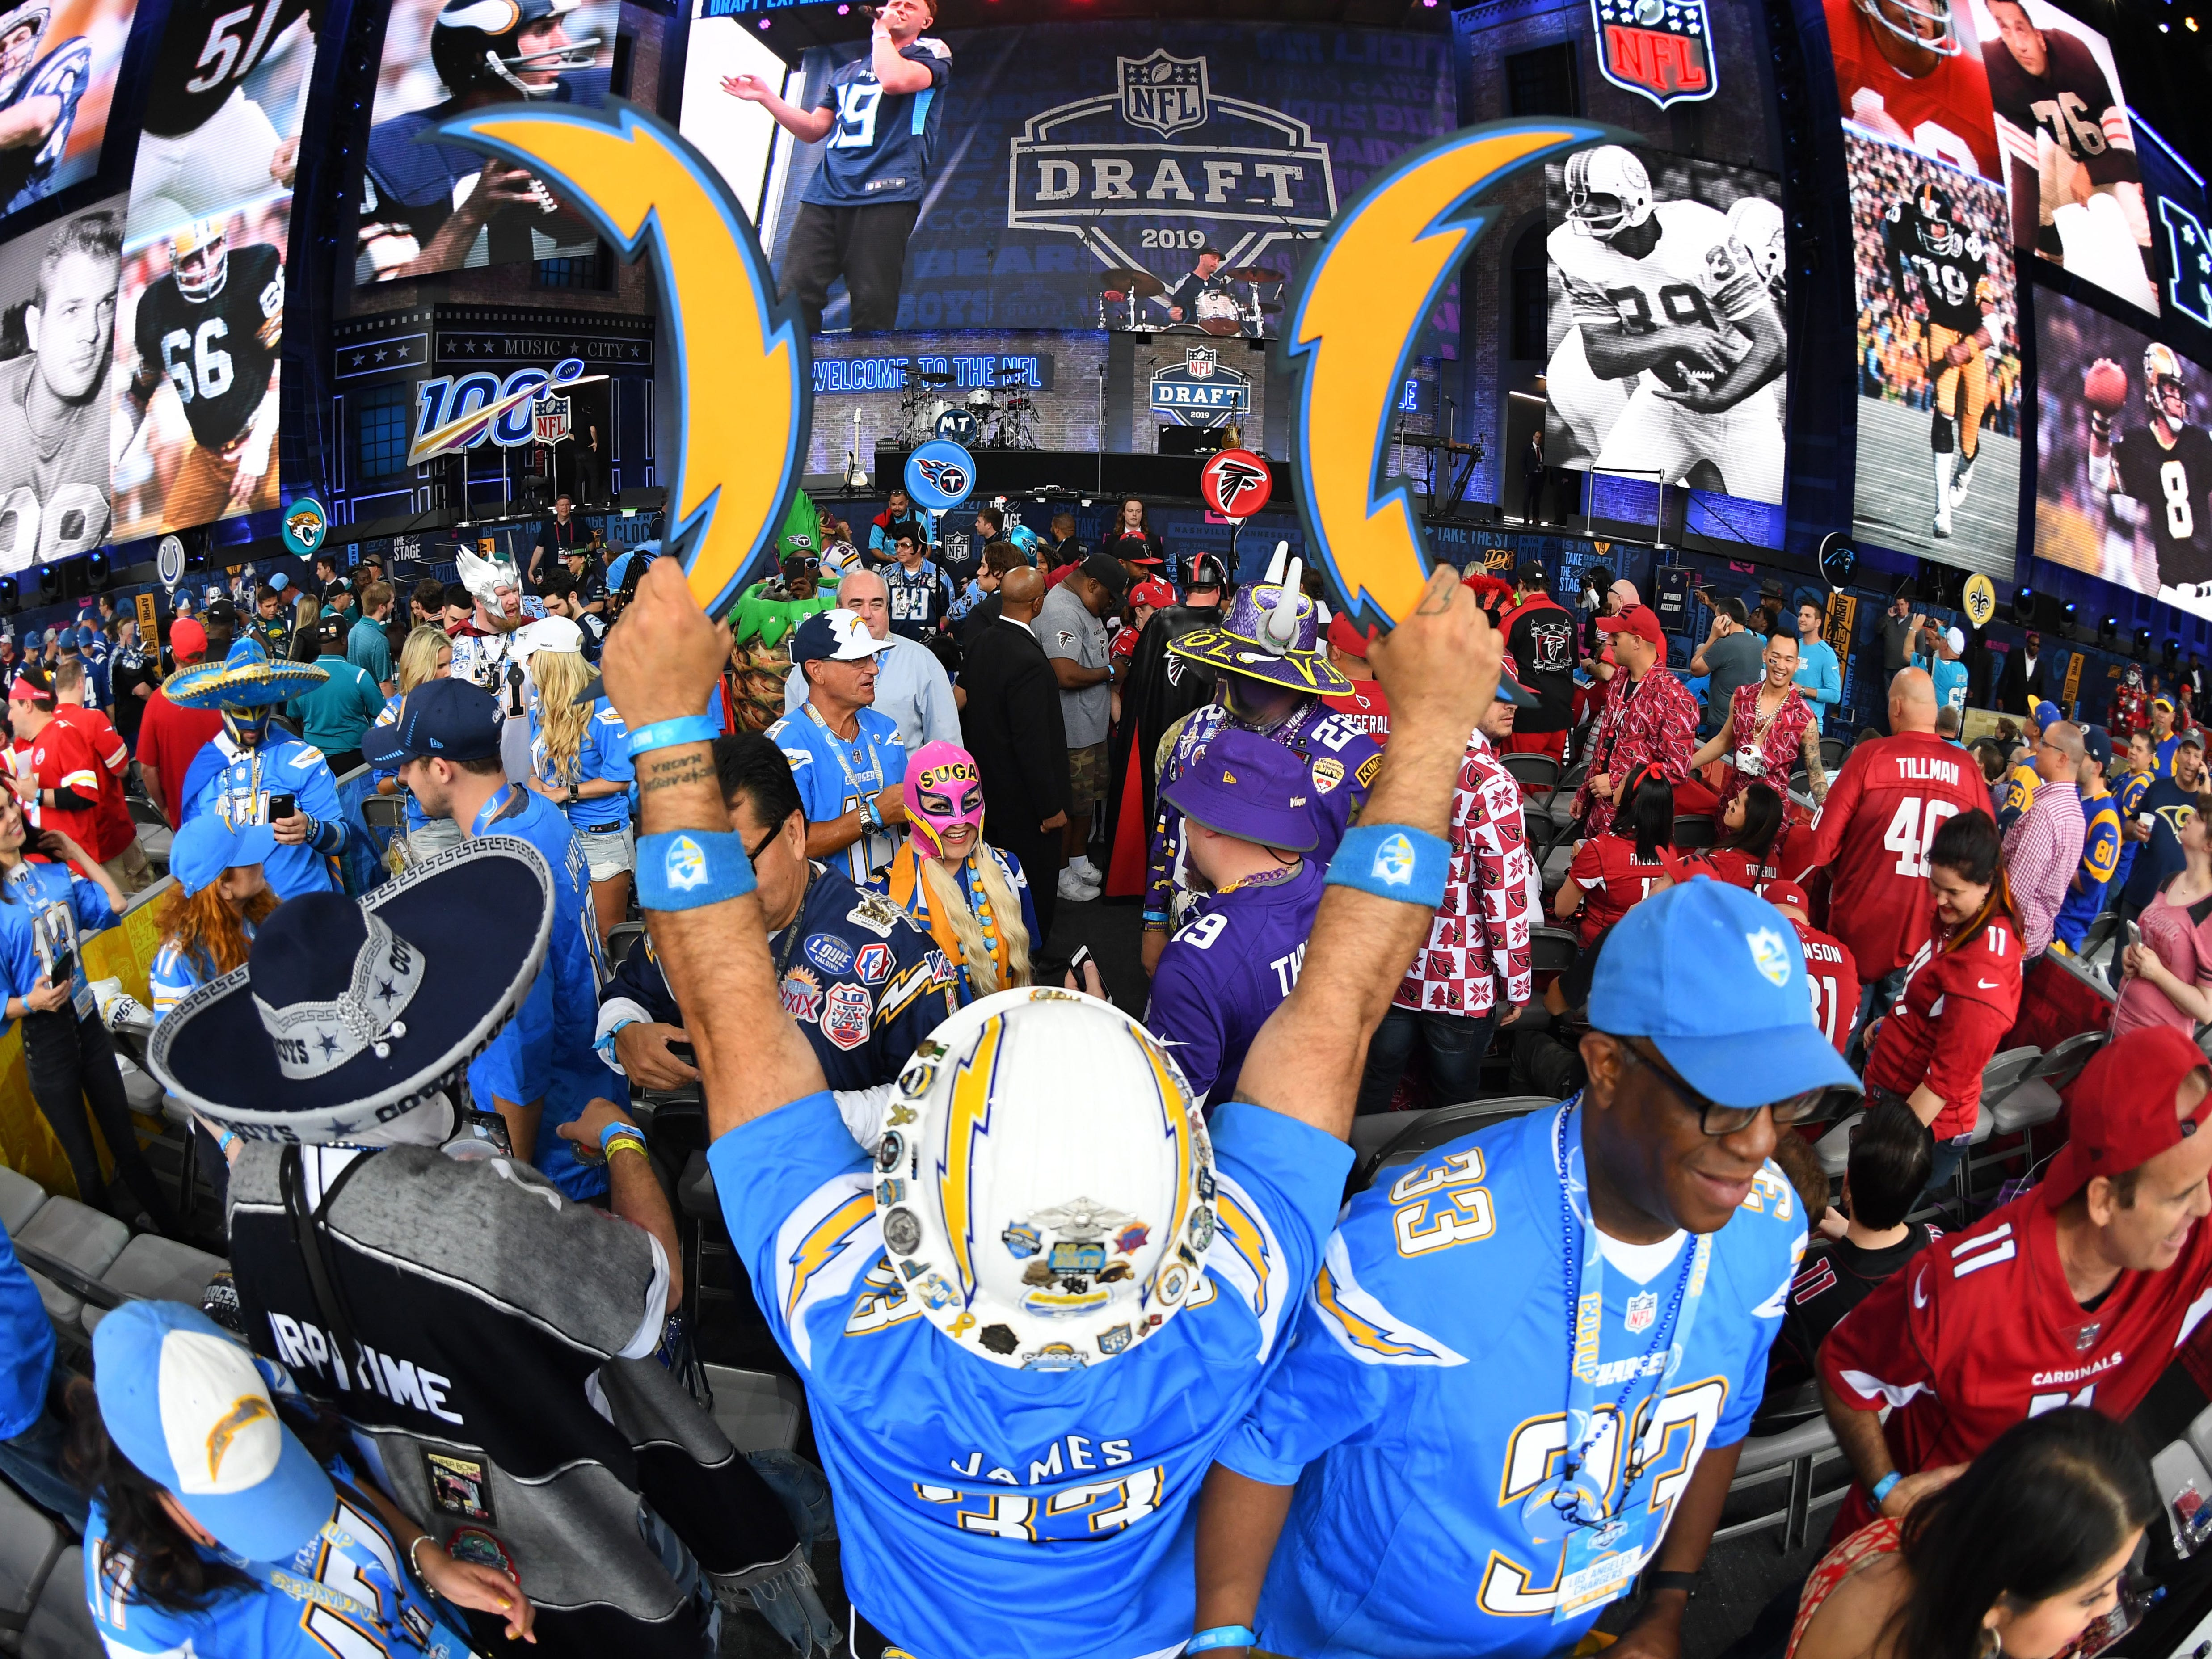 Los Angeles Chargers fans prior to the start of the 2019 NFL draft.